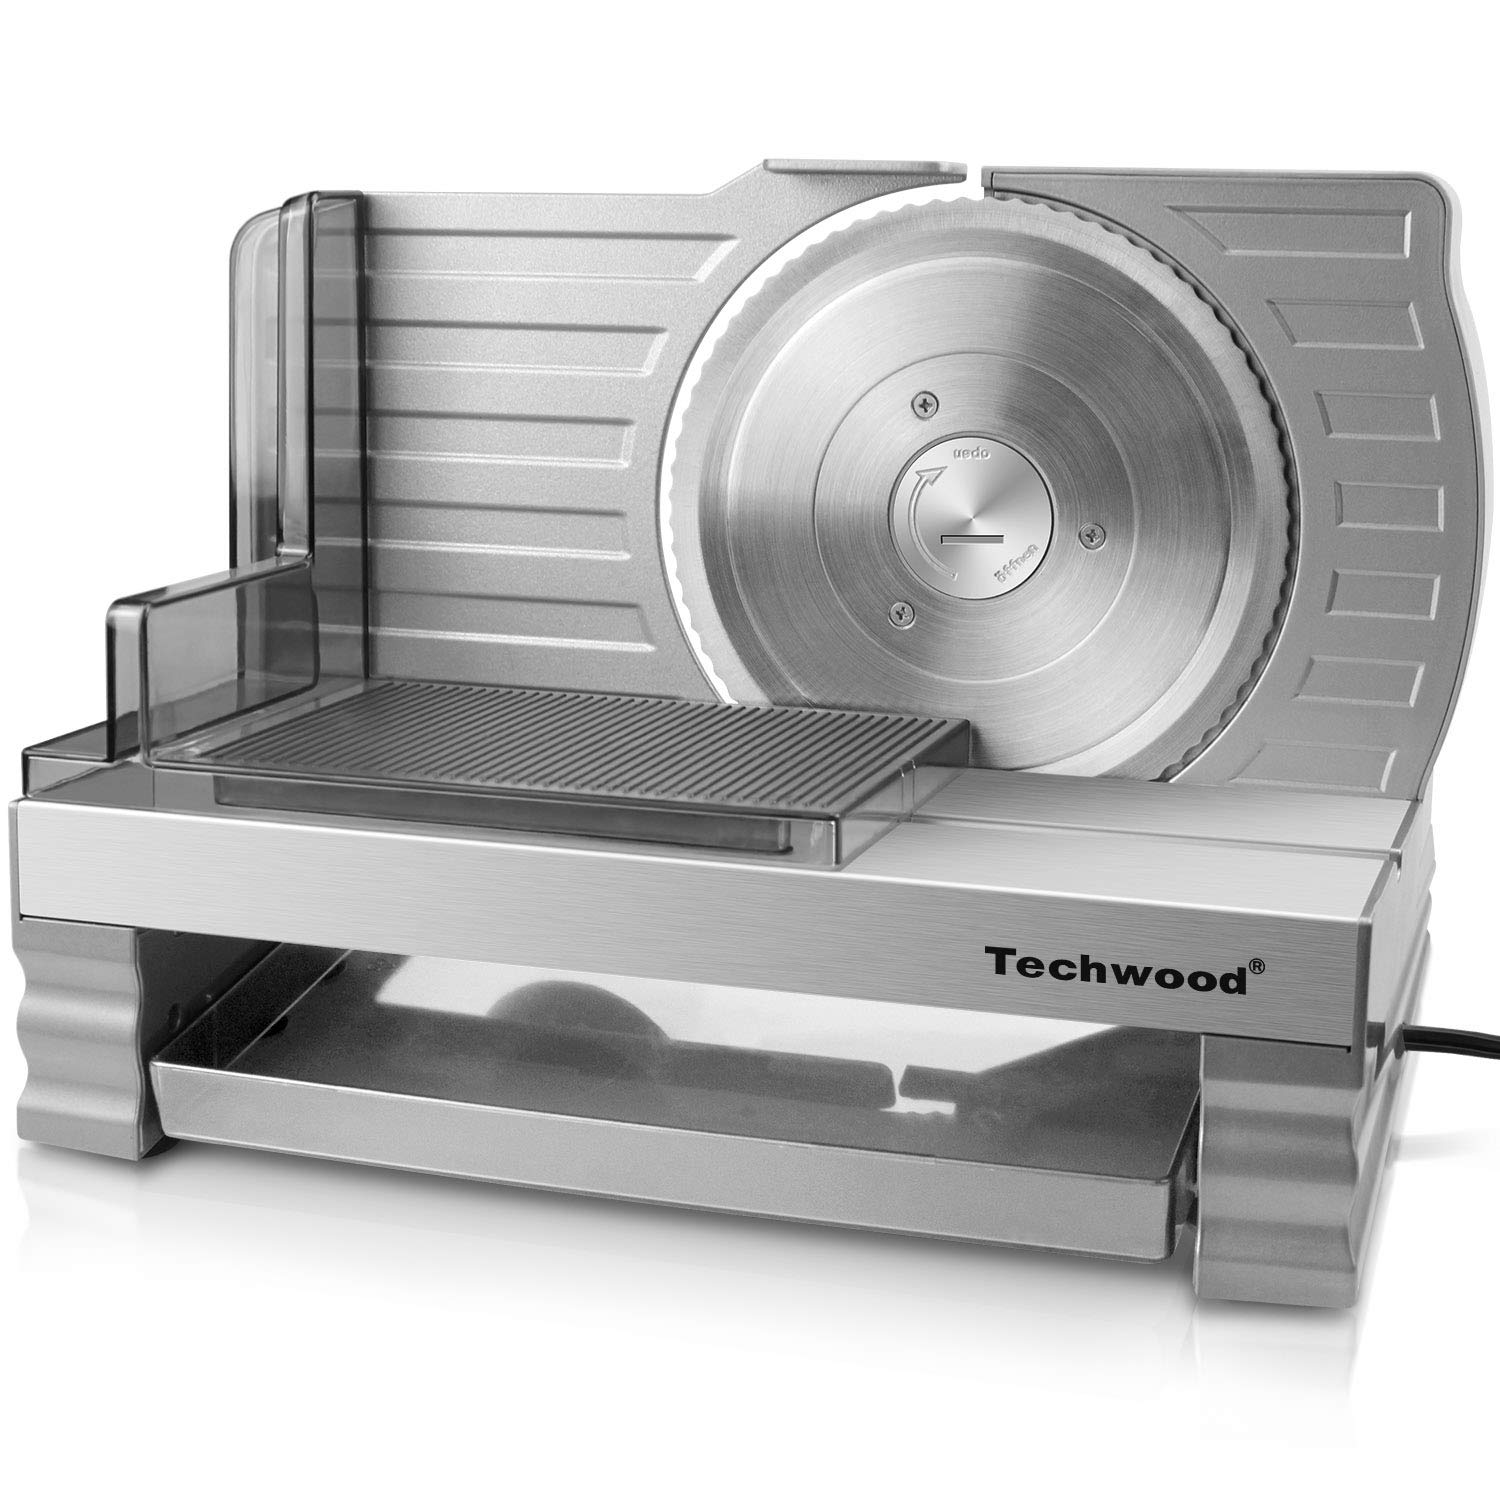 Techwood Meat Slicer Electric Deli Food Slicer Cheese Bread Fruit Cutter 6.7'' Removable Blade, Aluminum Alloy Track Platform, Adjustable Knob for Thickness, Food Tray& Pusher, Commercial& Home Use by Techwood